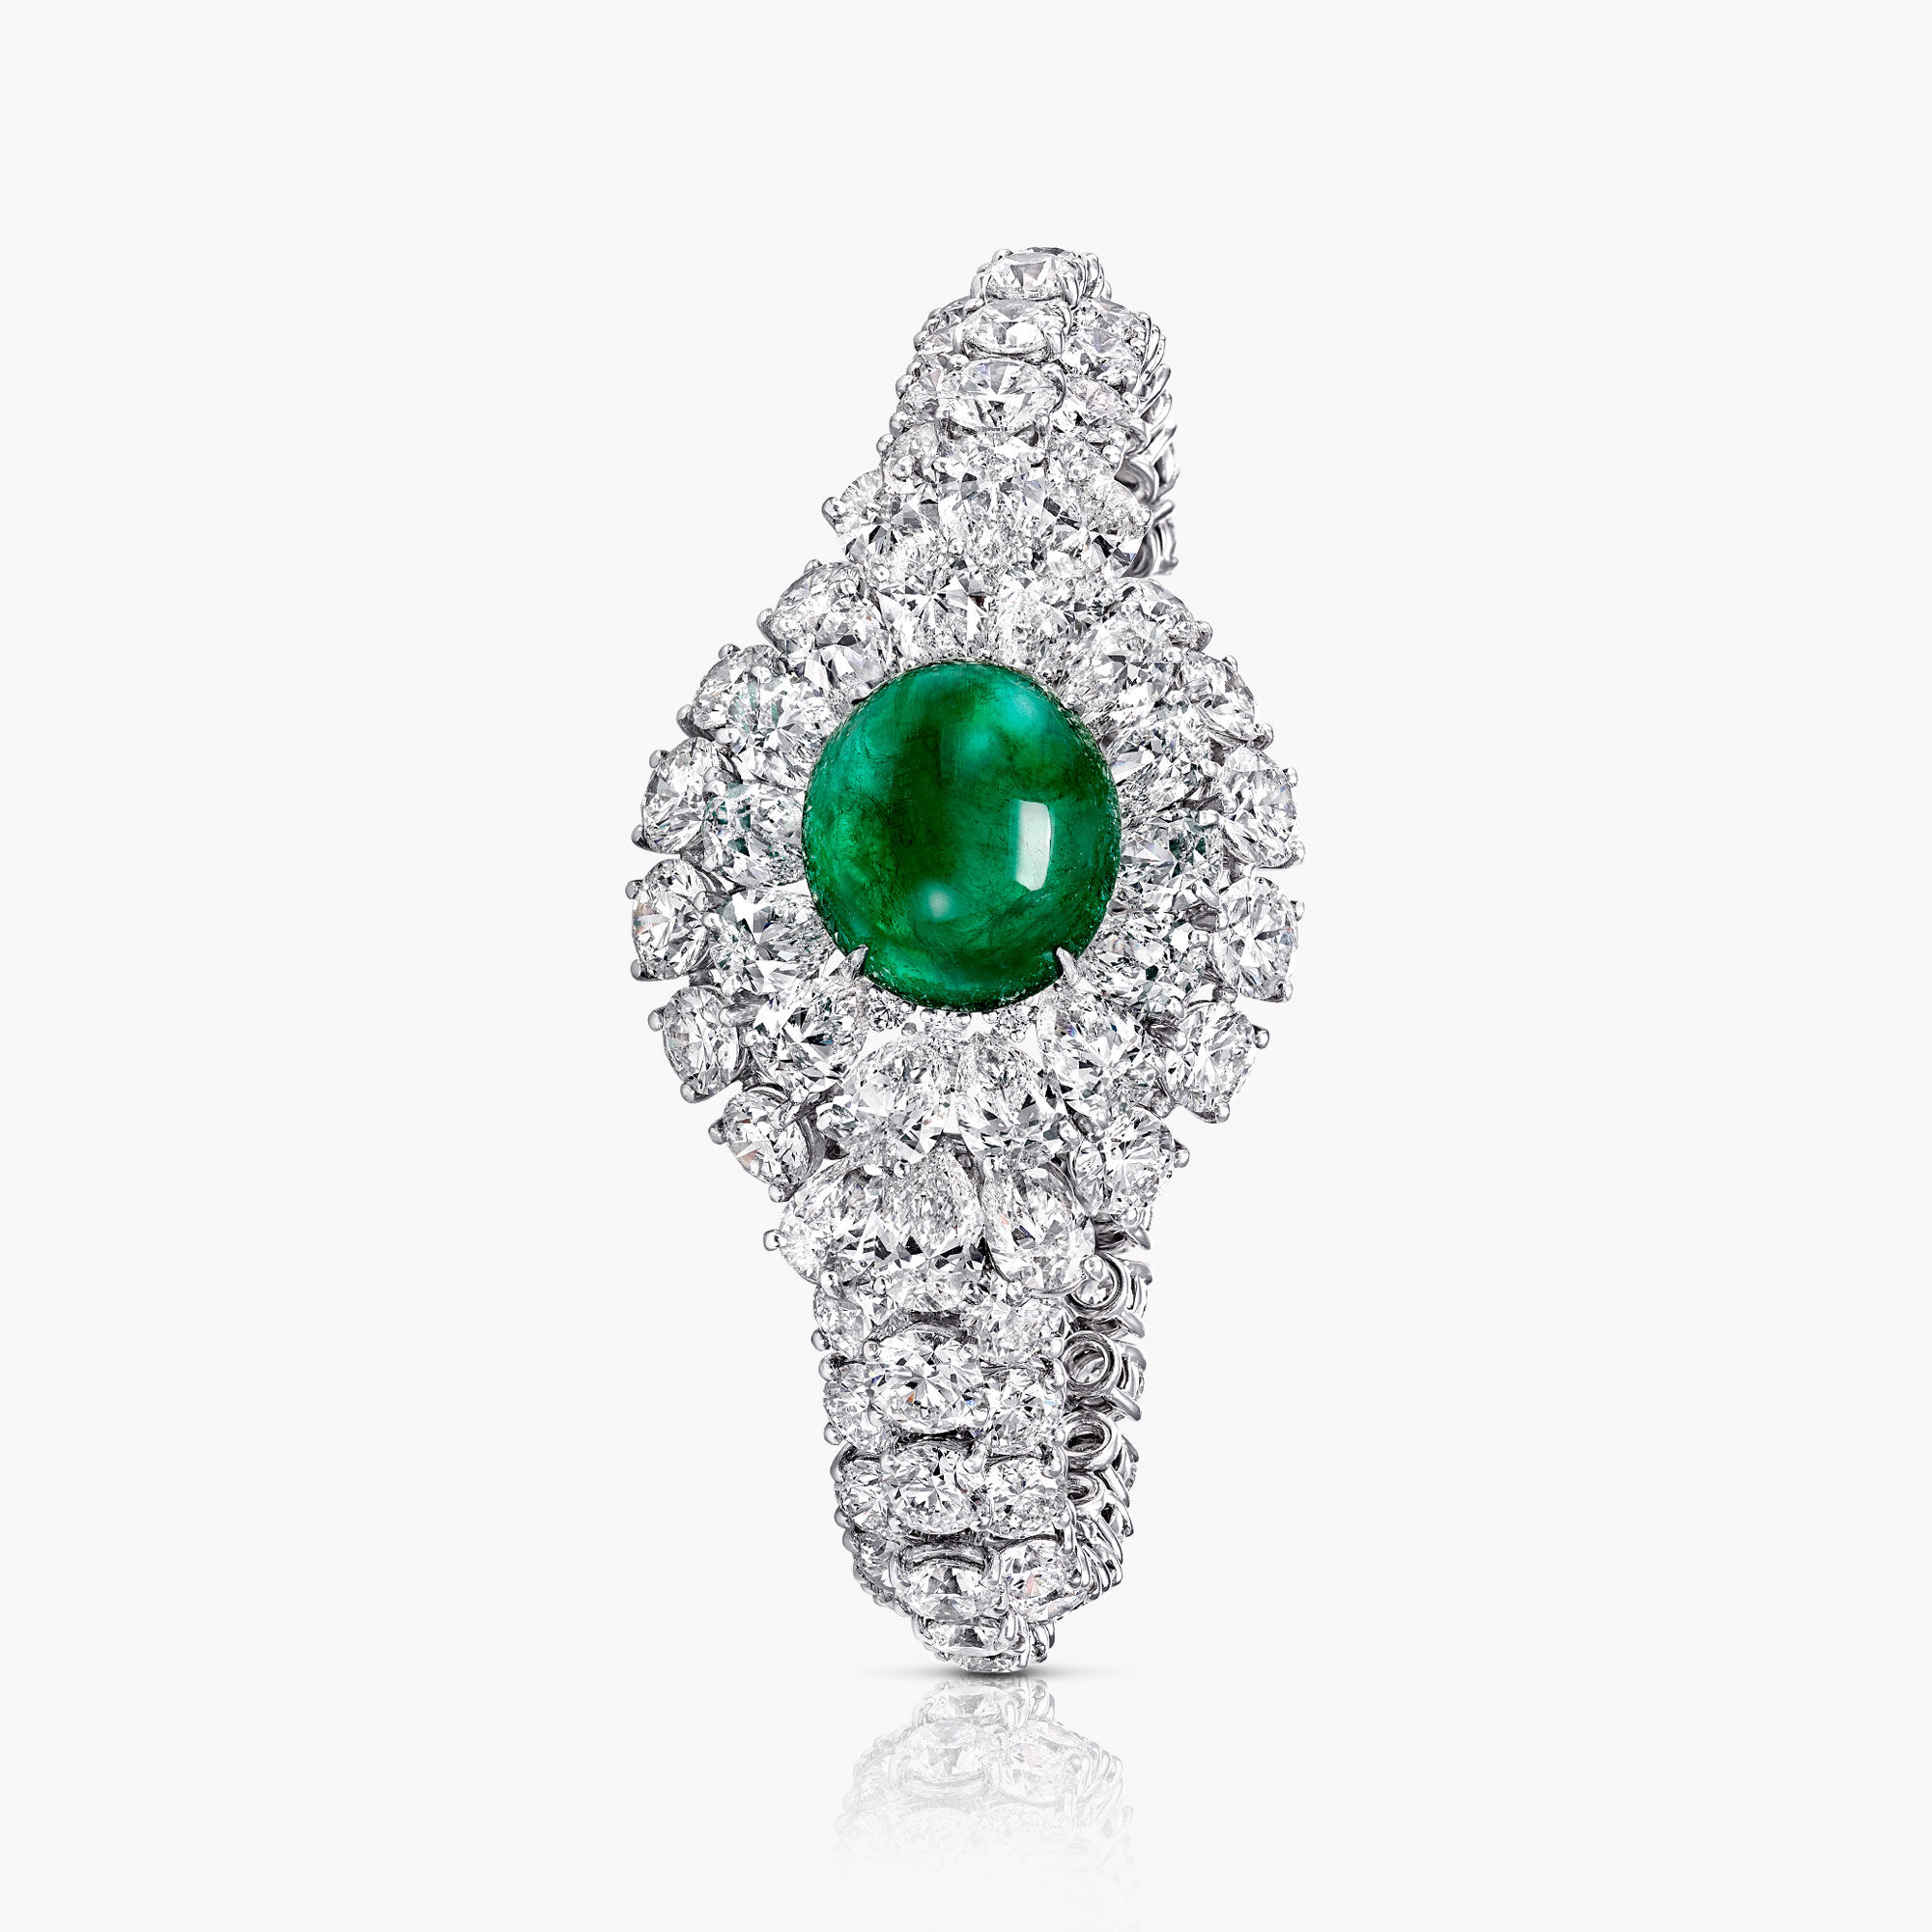 A Graff emerald and white diamond high jewellery bracelet